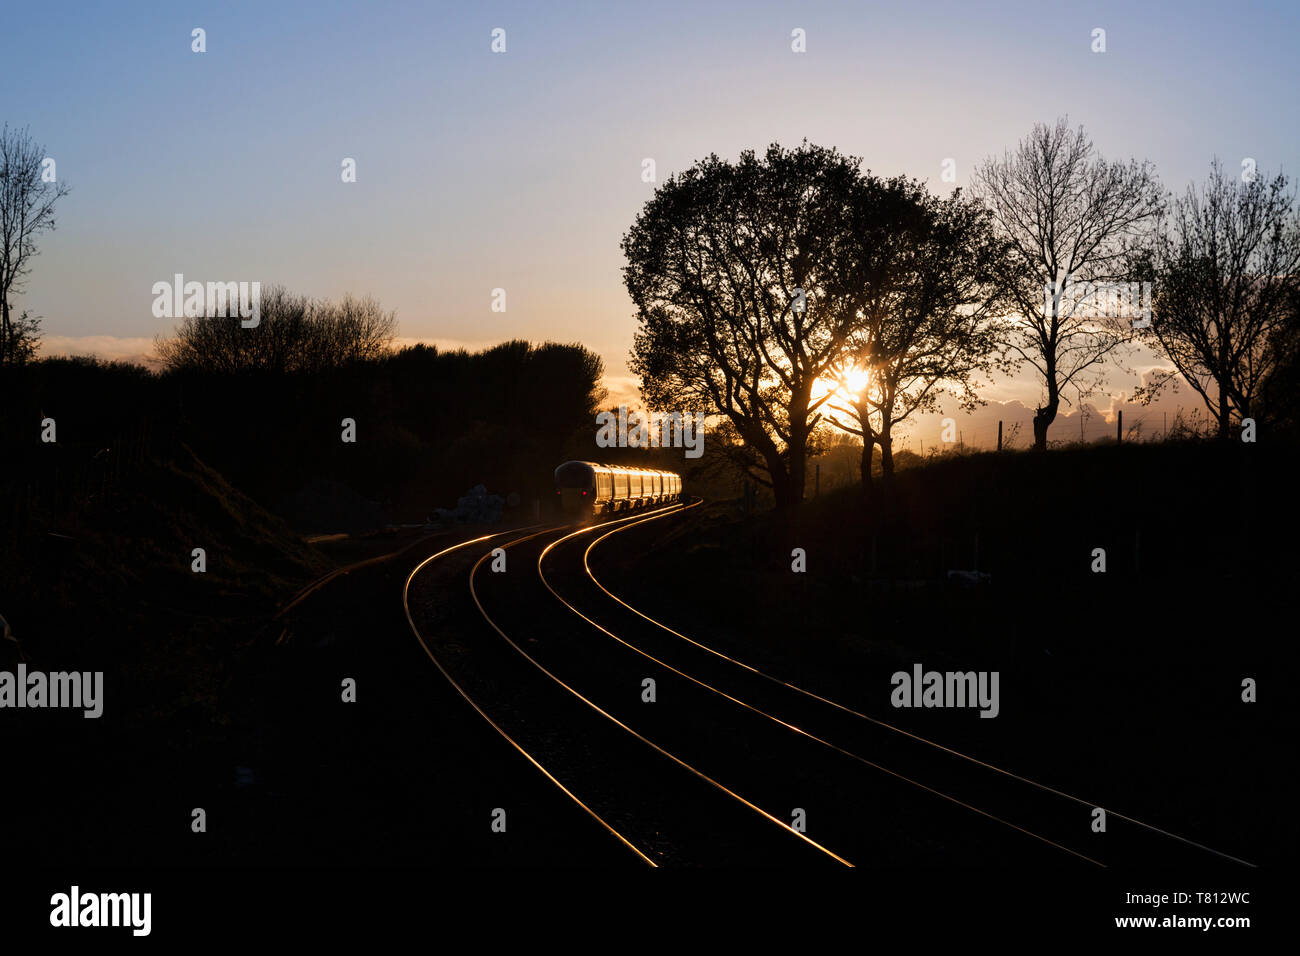 2 First Great Western railway Hitachi Intercity Express trains  ( IEP ) head into the sunset at Crofton, Wiltshire - Stock Image